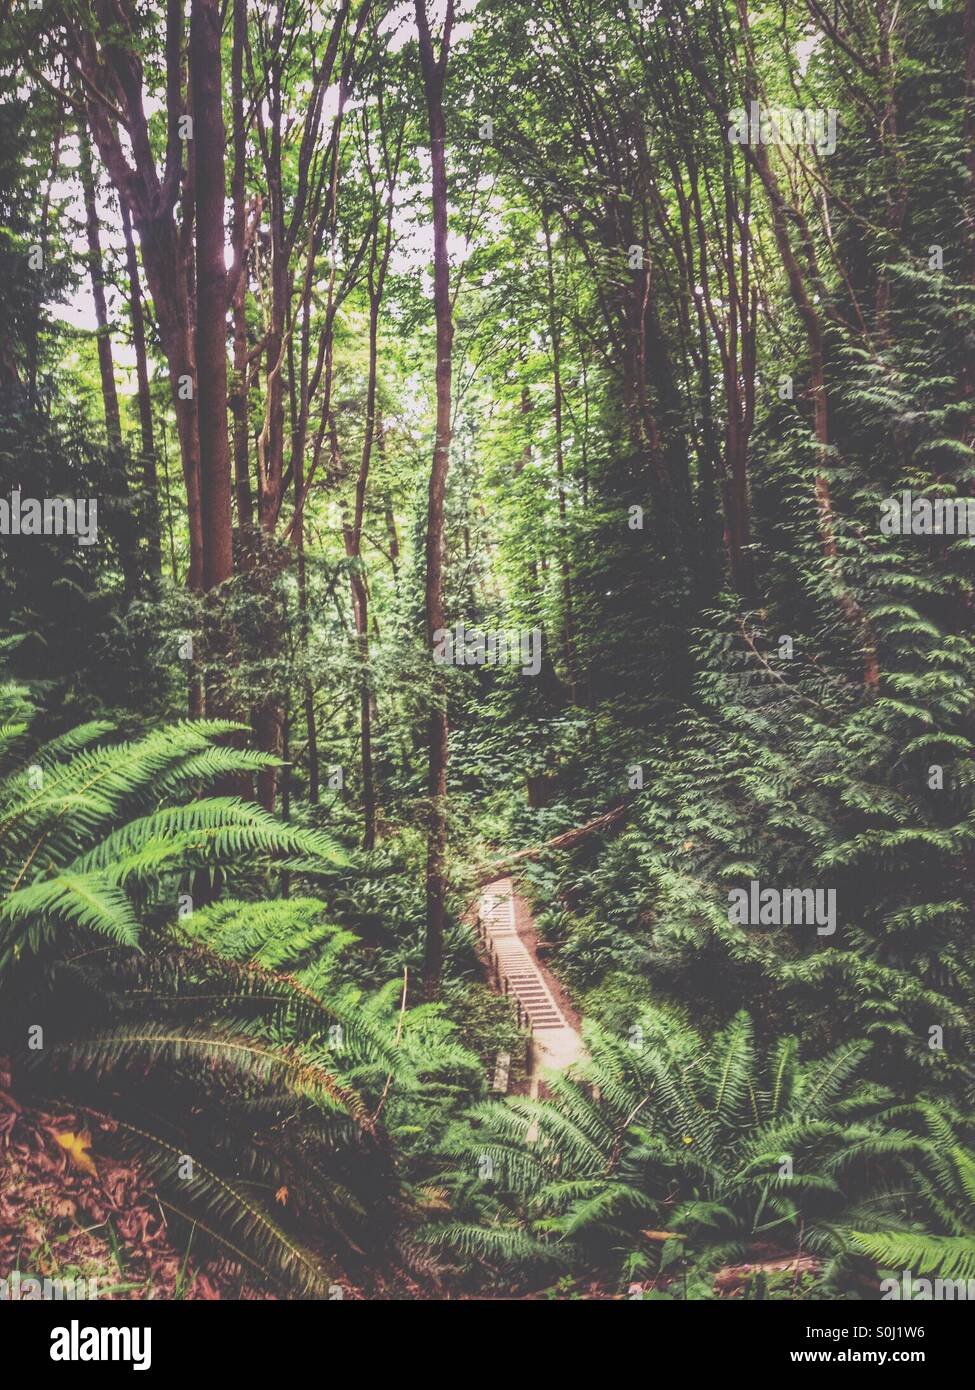 Into the woods - Stock Image